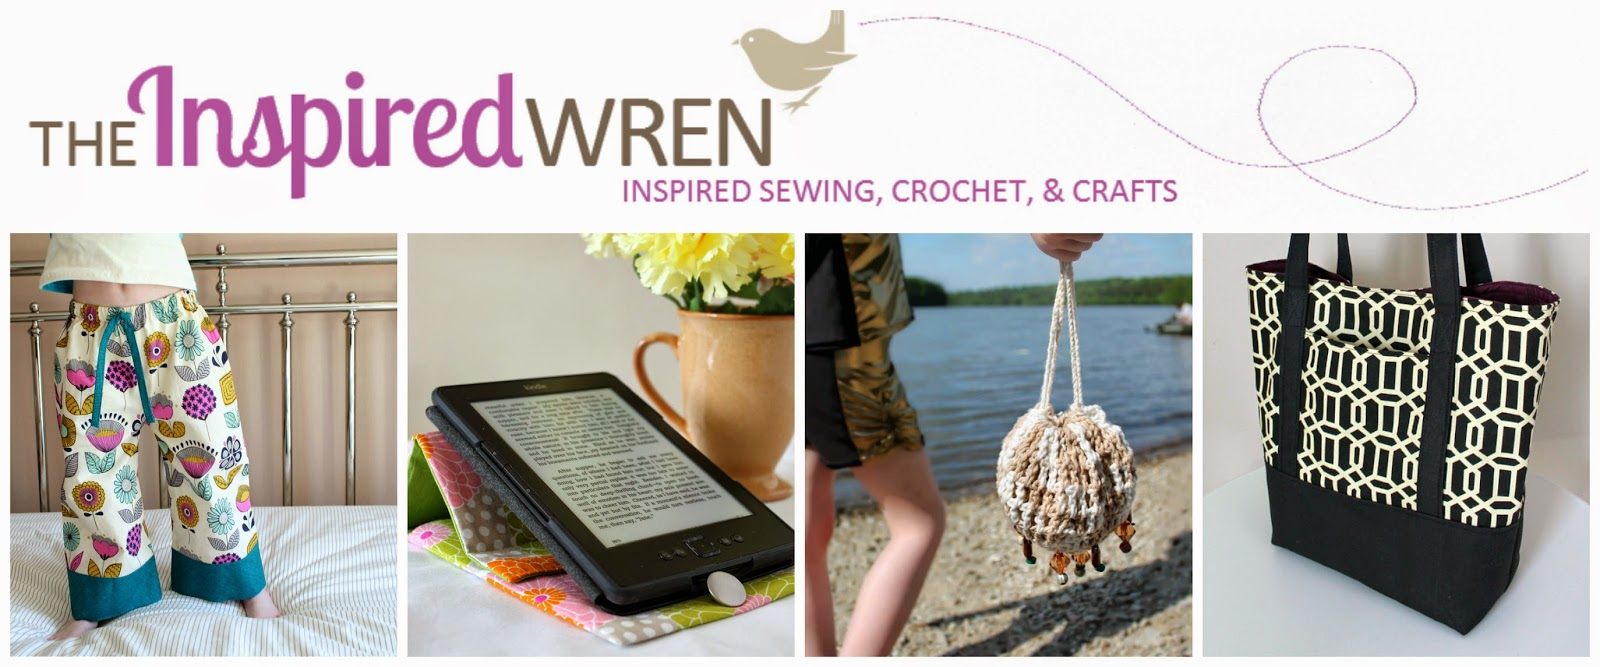 The Inspired Wren | Inspired sewing, crochet, & crafts.